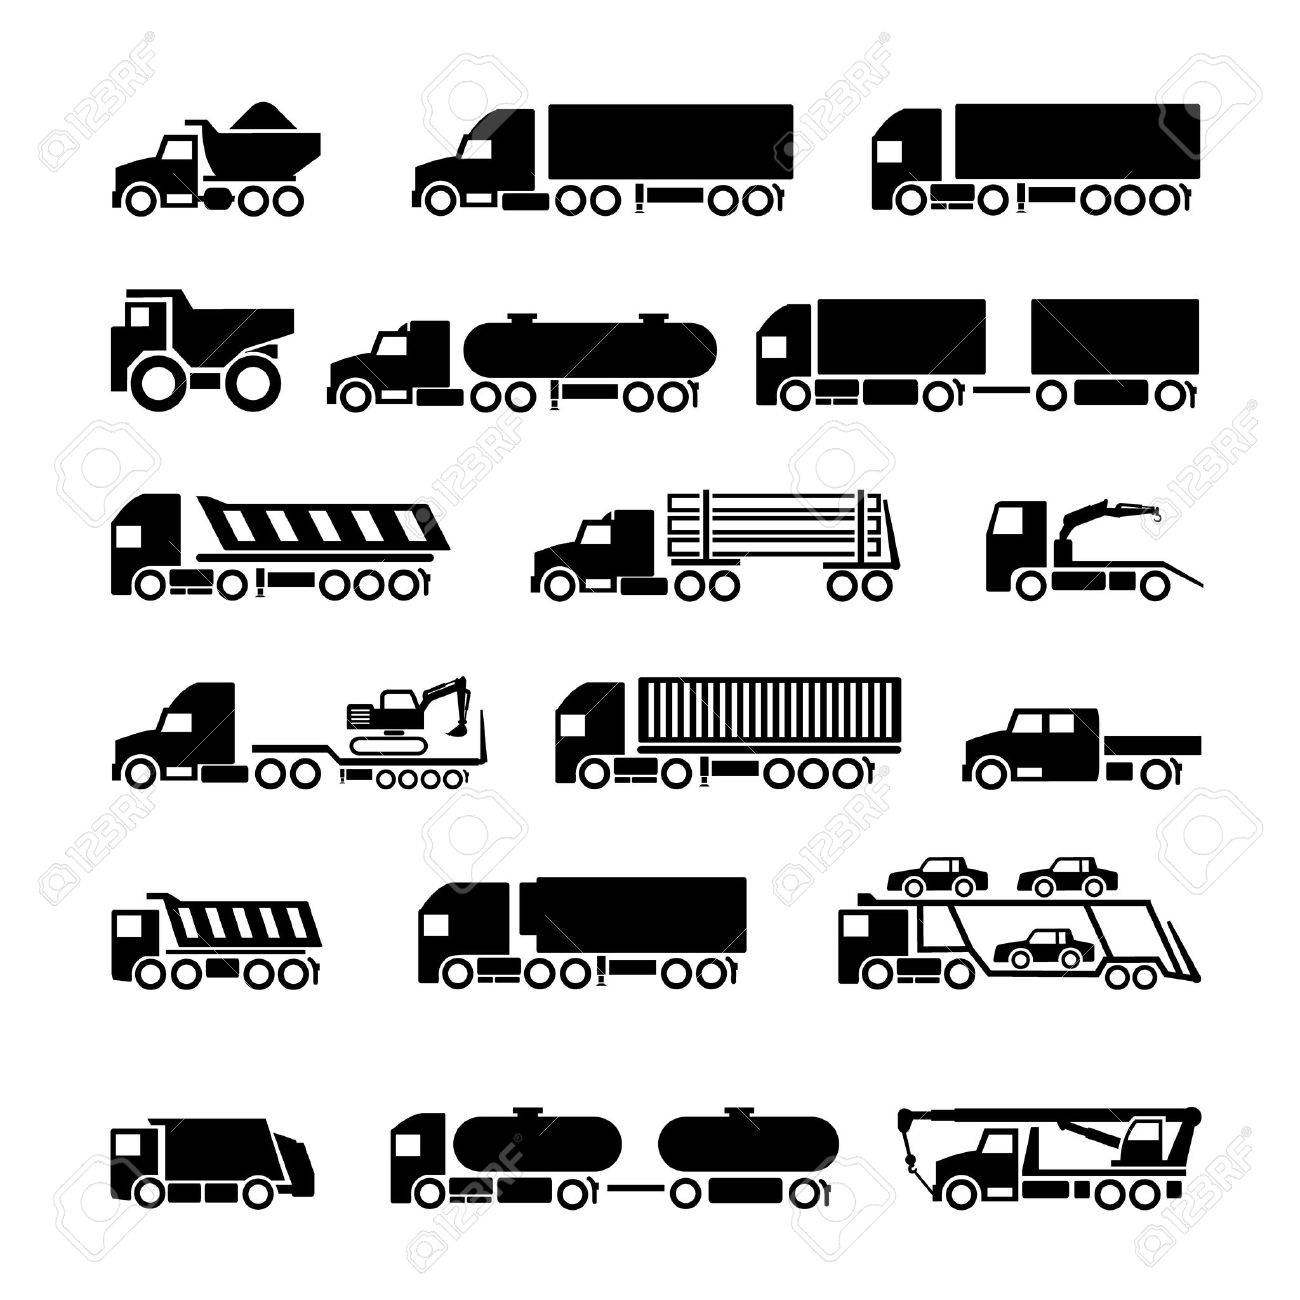 Trucks, trailers and vehicles icons set isolated on white - 29414020